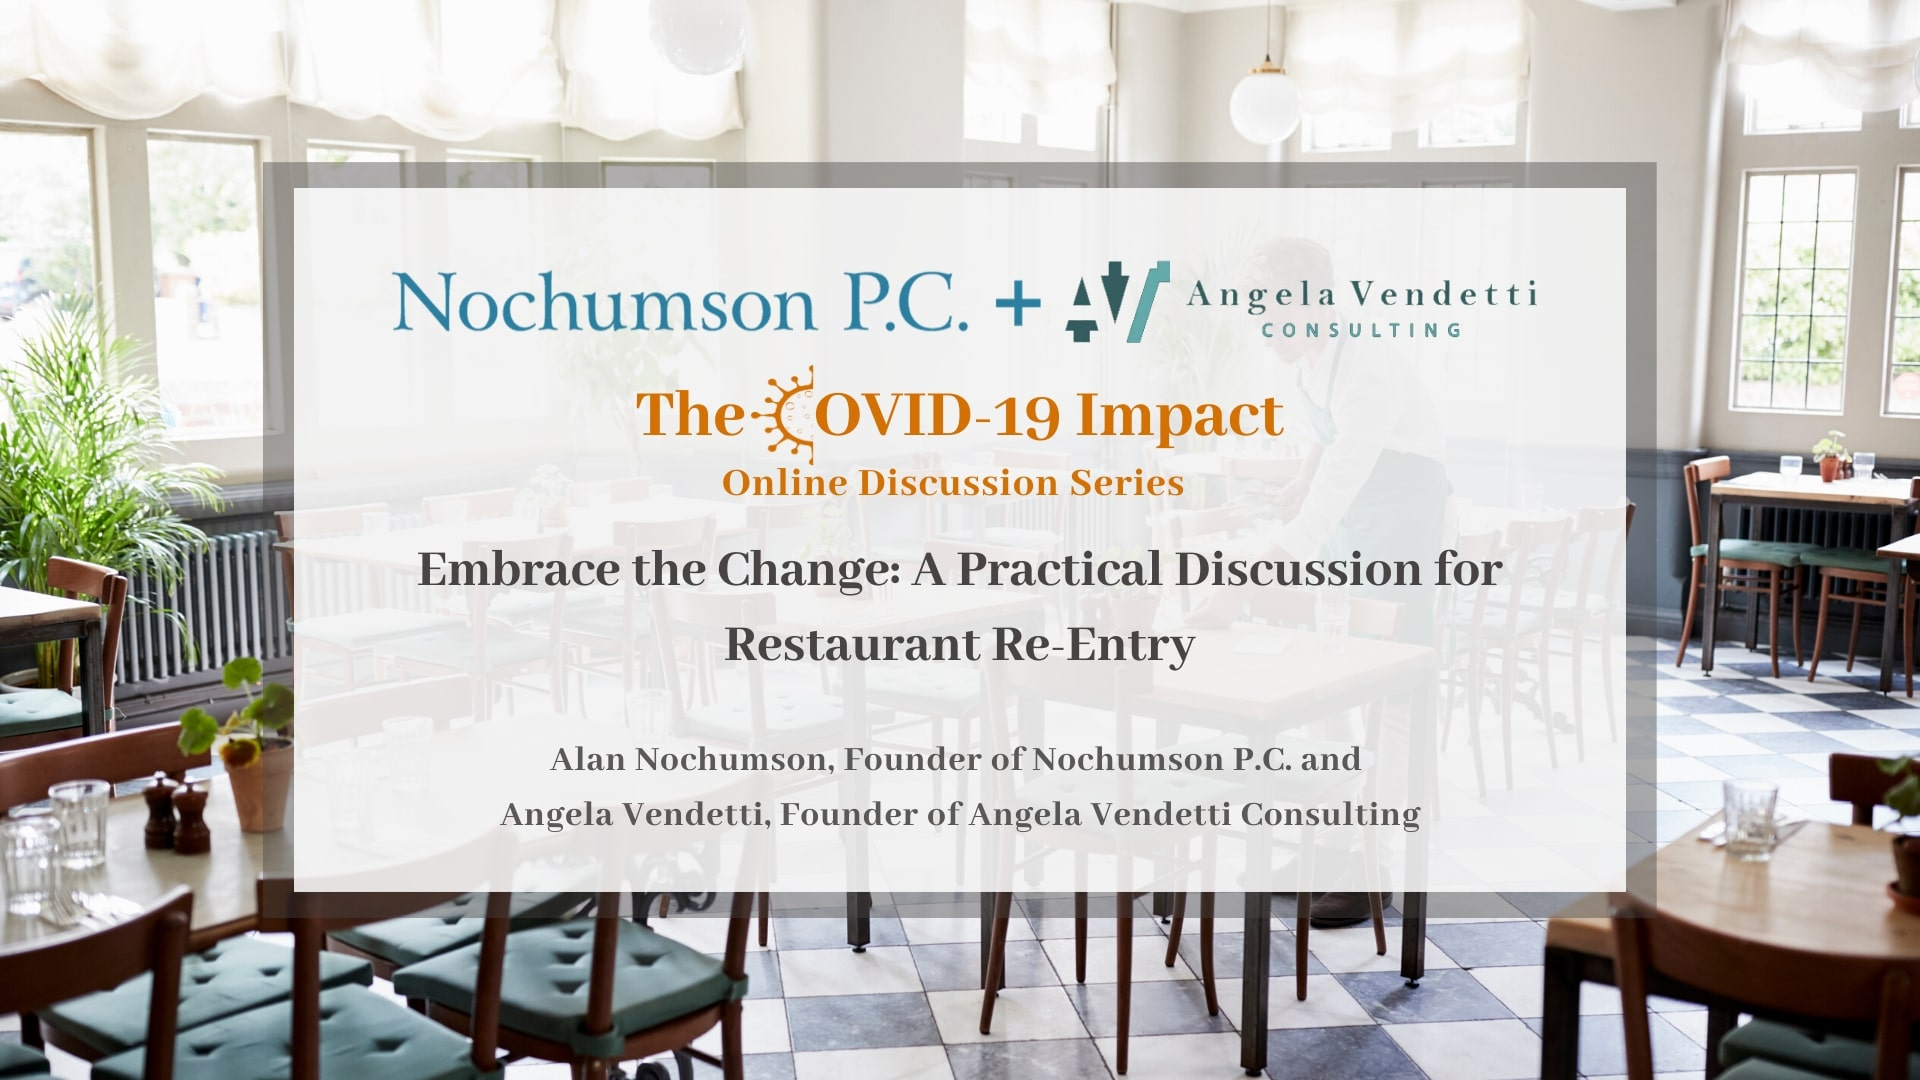 Embrace the Change: A Practical Discussion for Restaurant Re-Entry